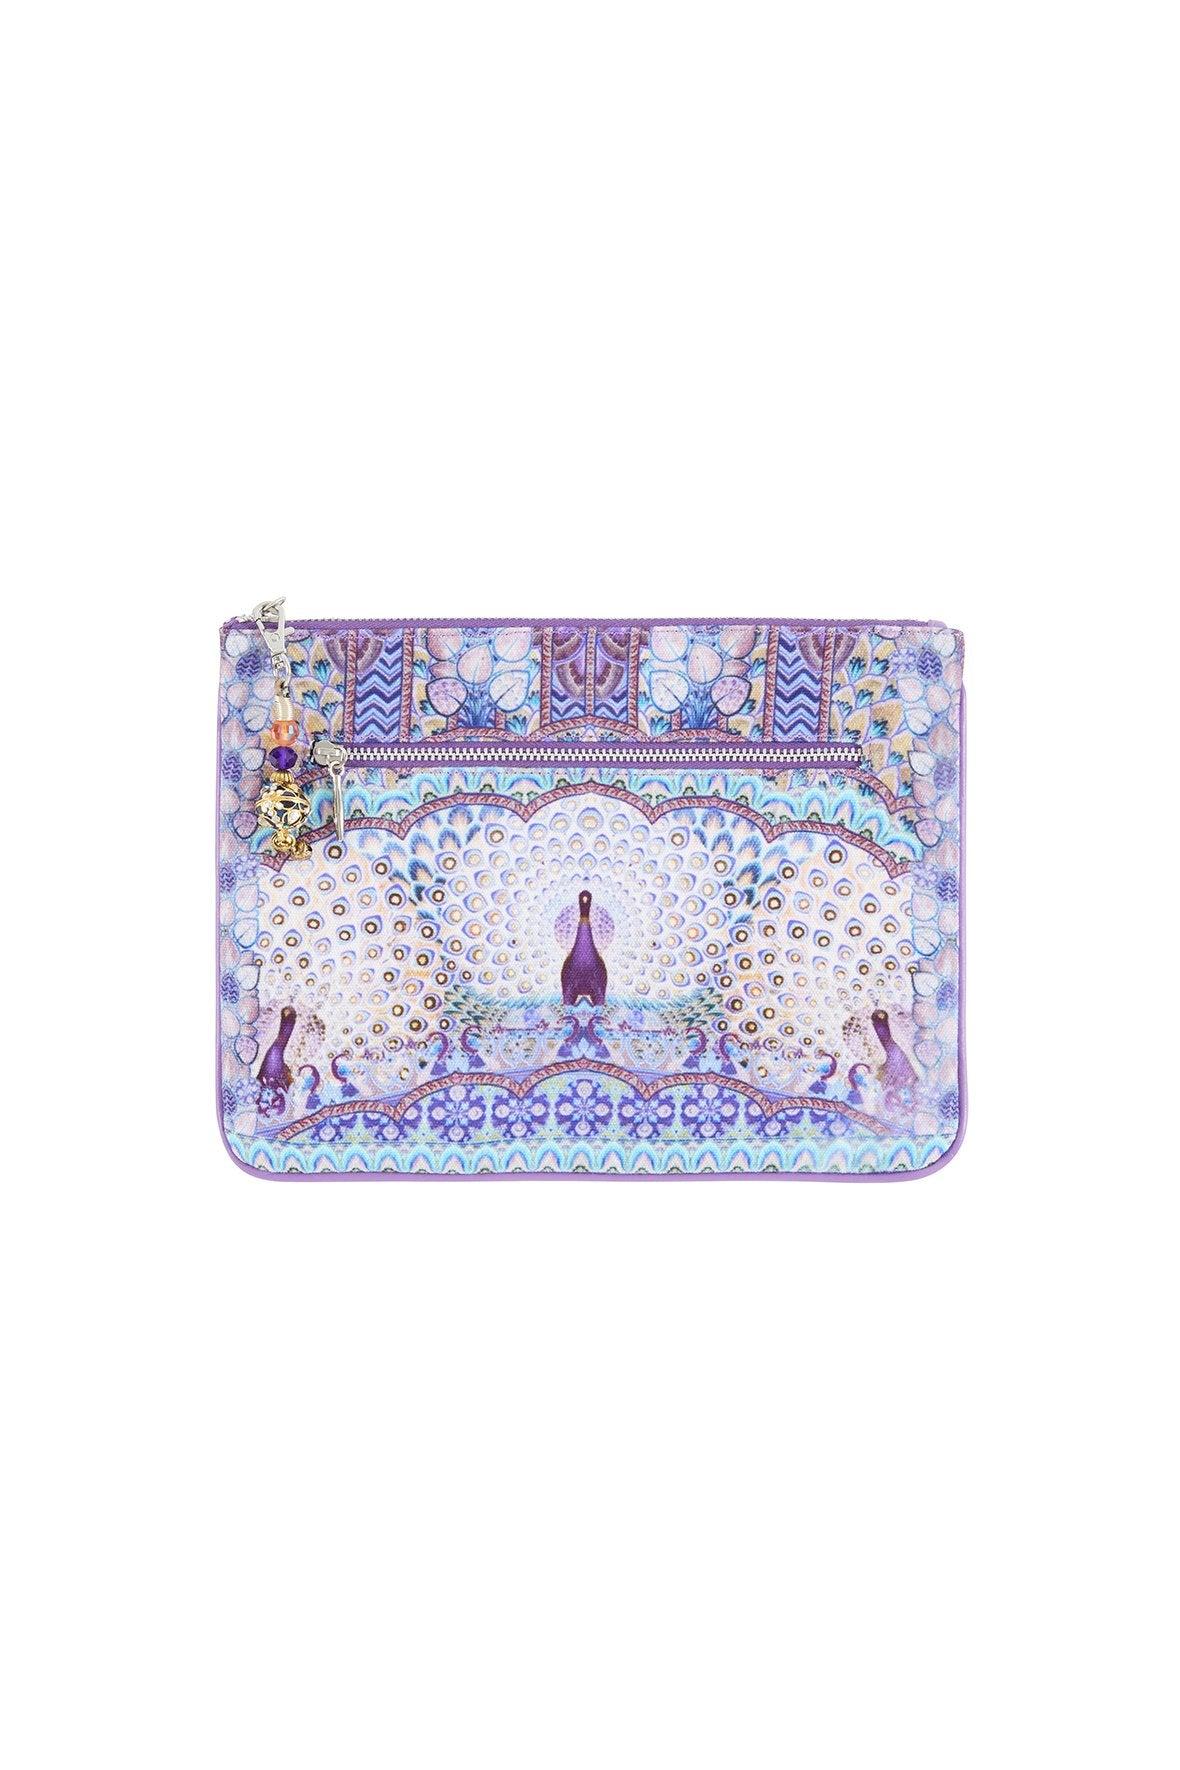 CAMILLA WINGS TO FLY SMALL CANVAS CLUTCH